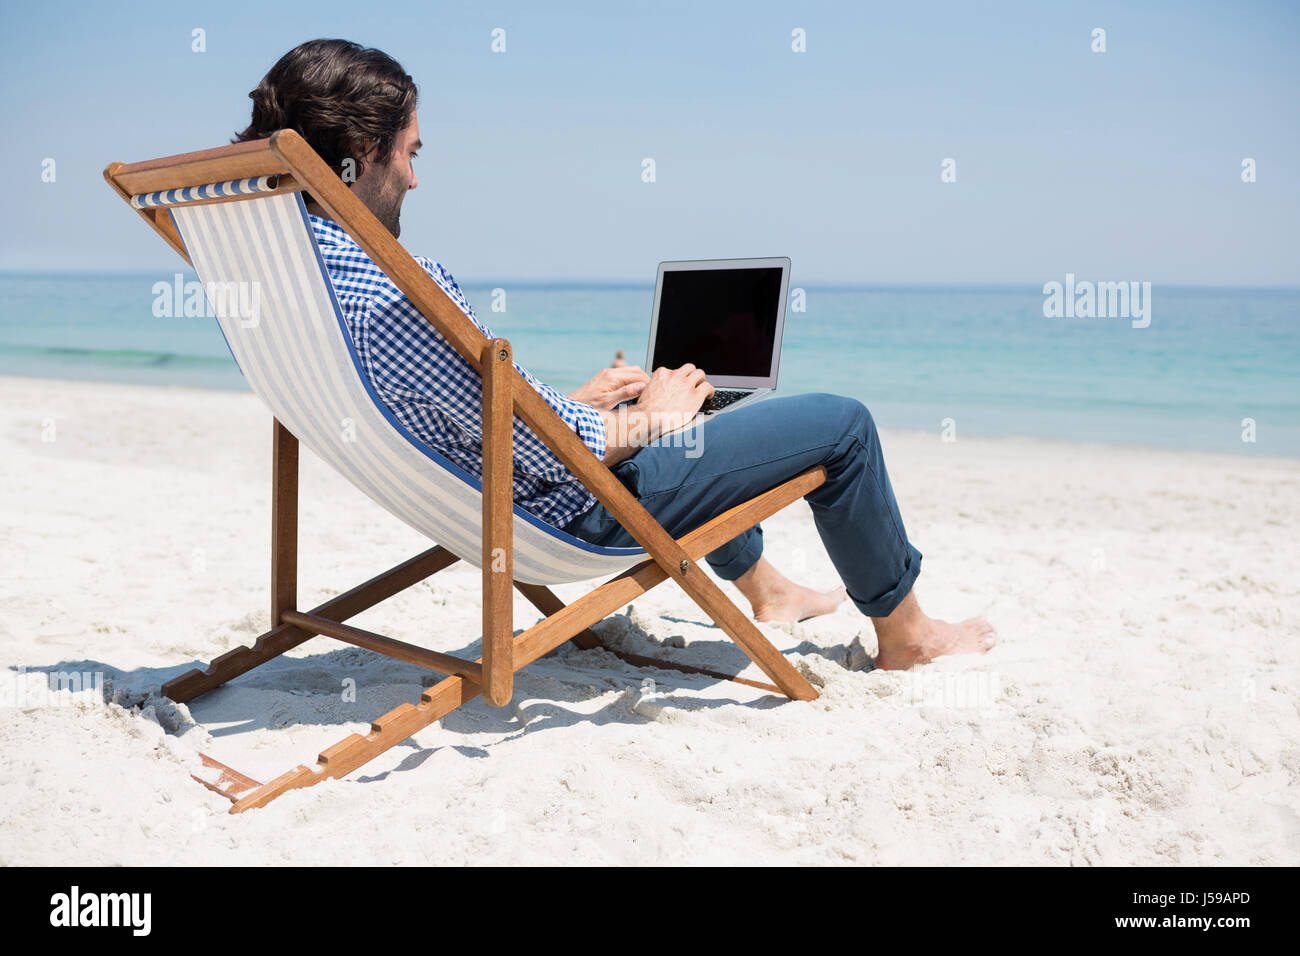 Side View Of Man Using Laptop While Sitting On Deck Chair At Beach Stock Photo Alamy